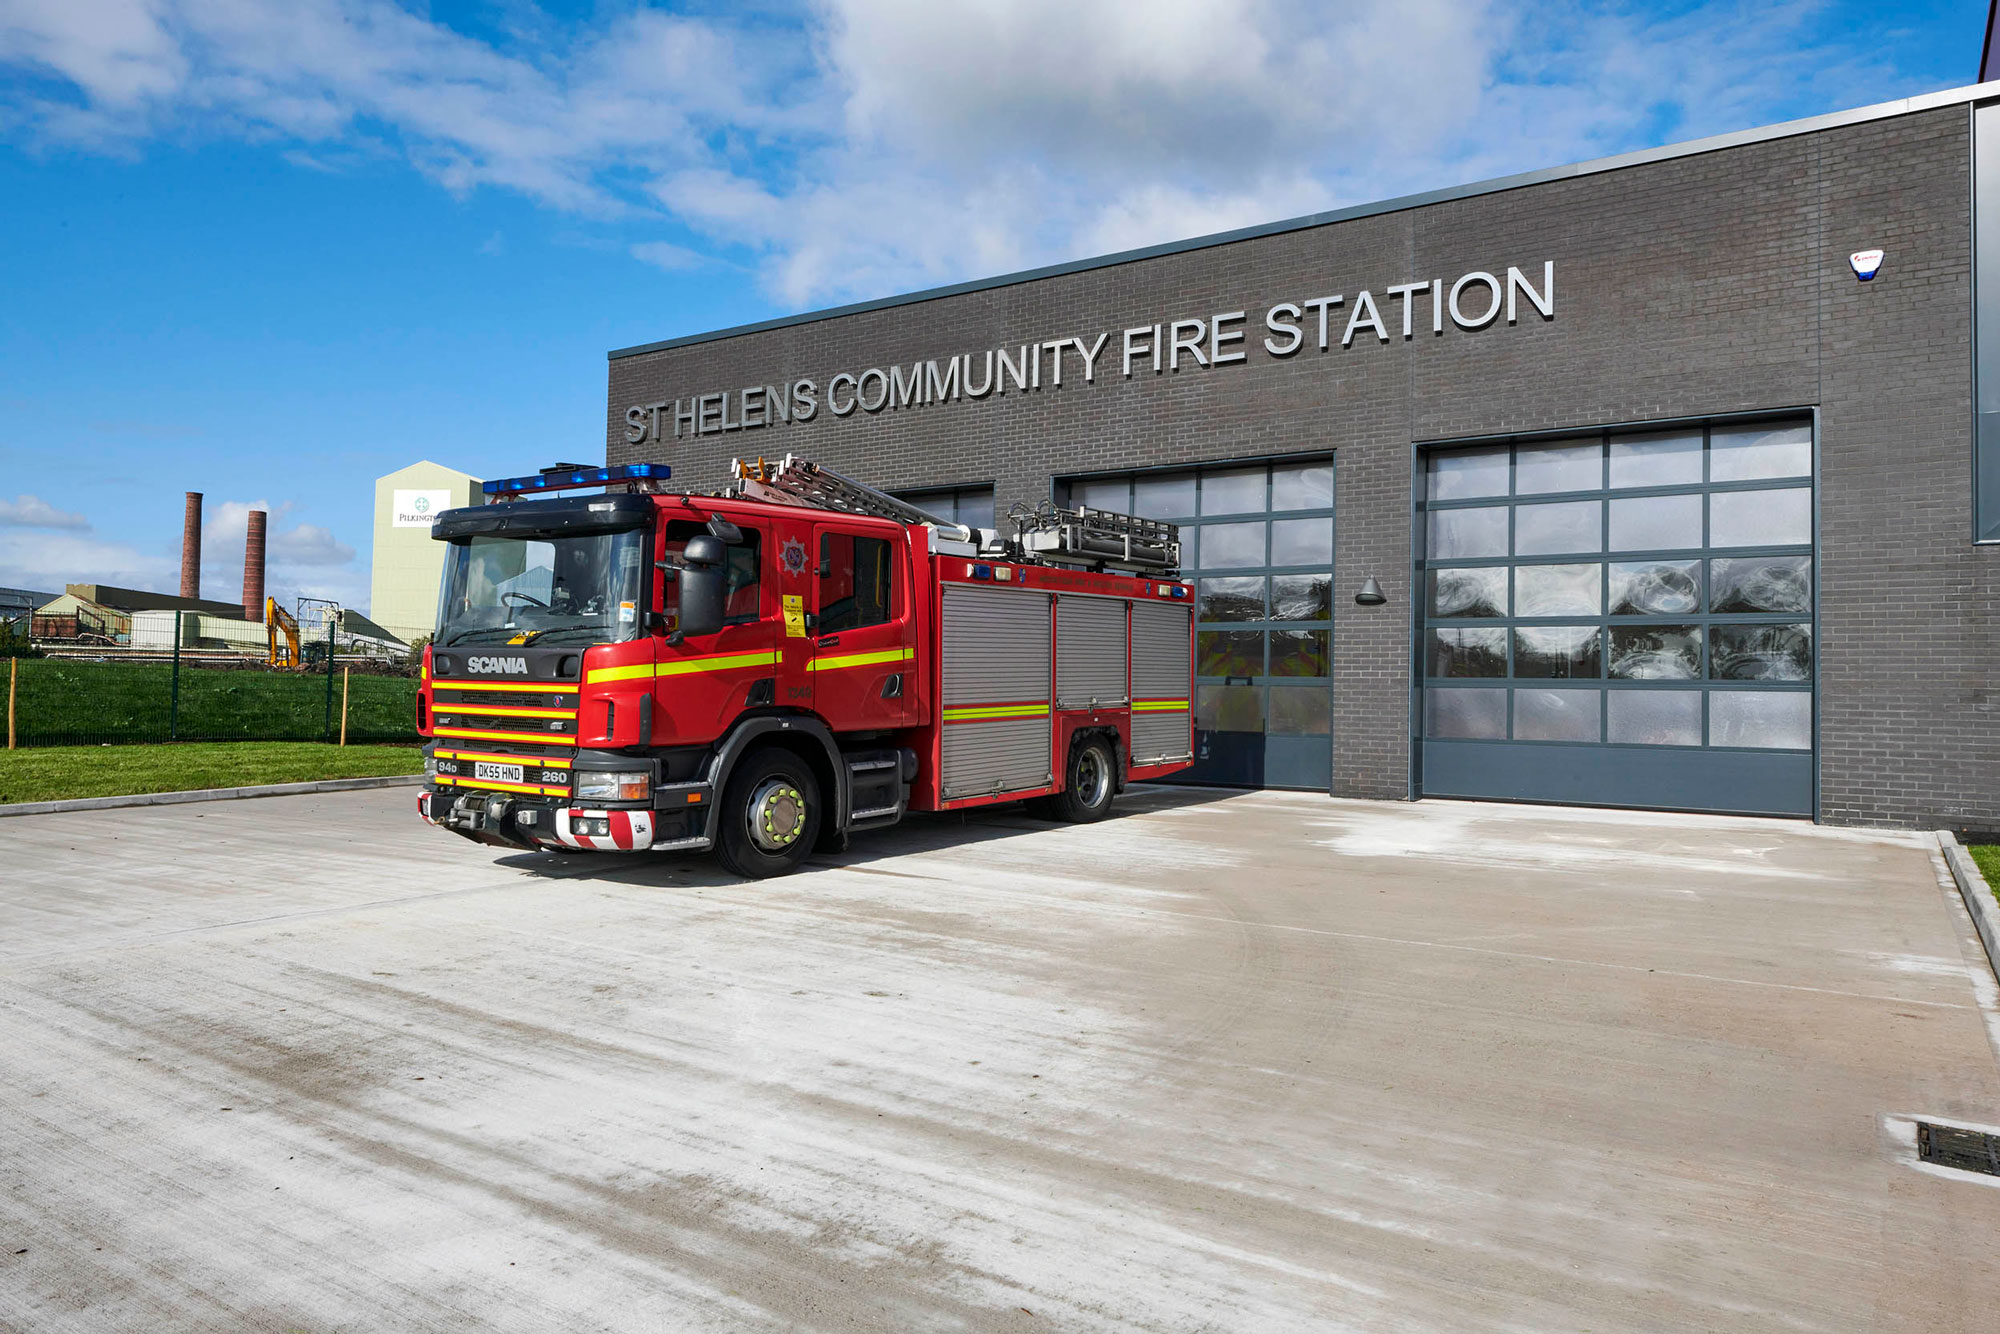 SUPPORTING EMERGENCY SERVICES